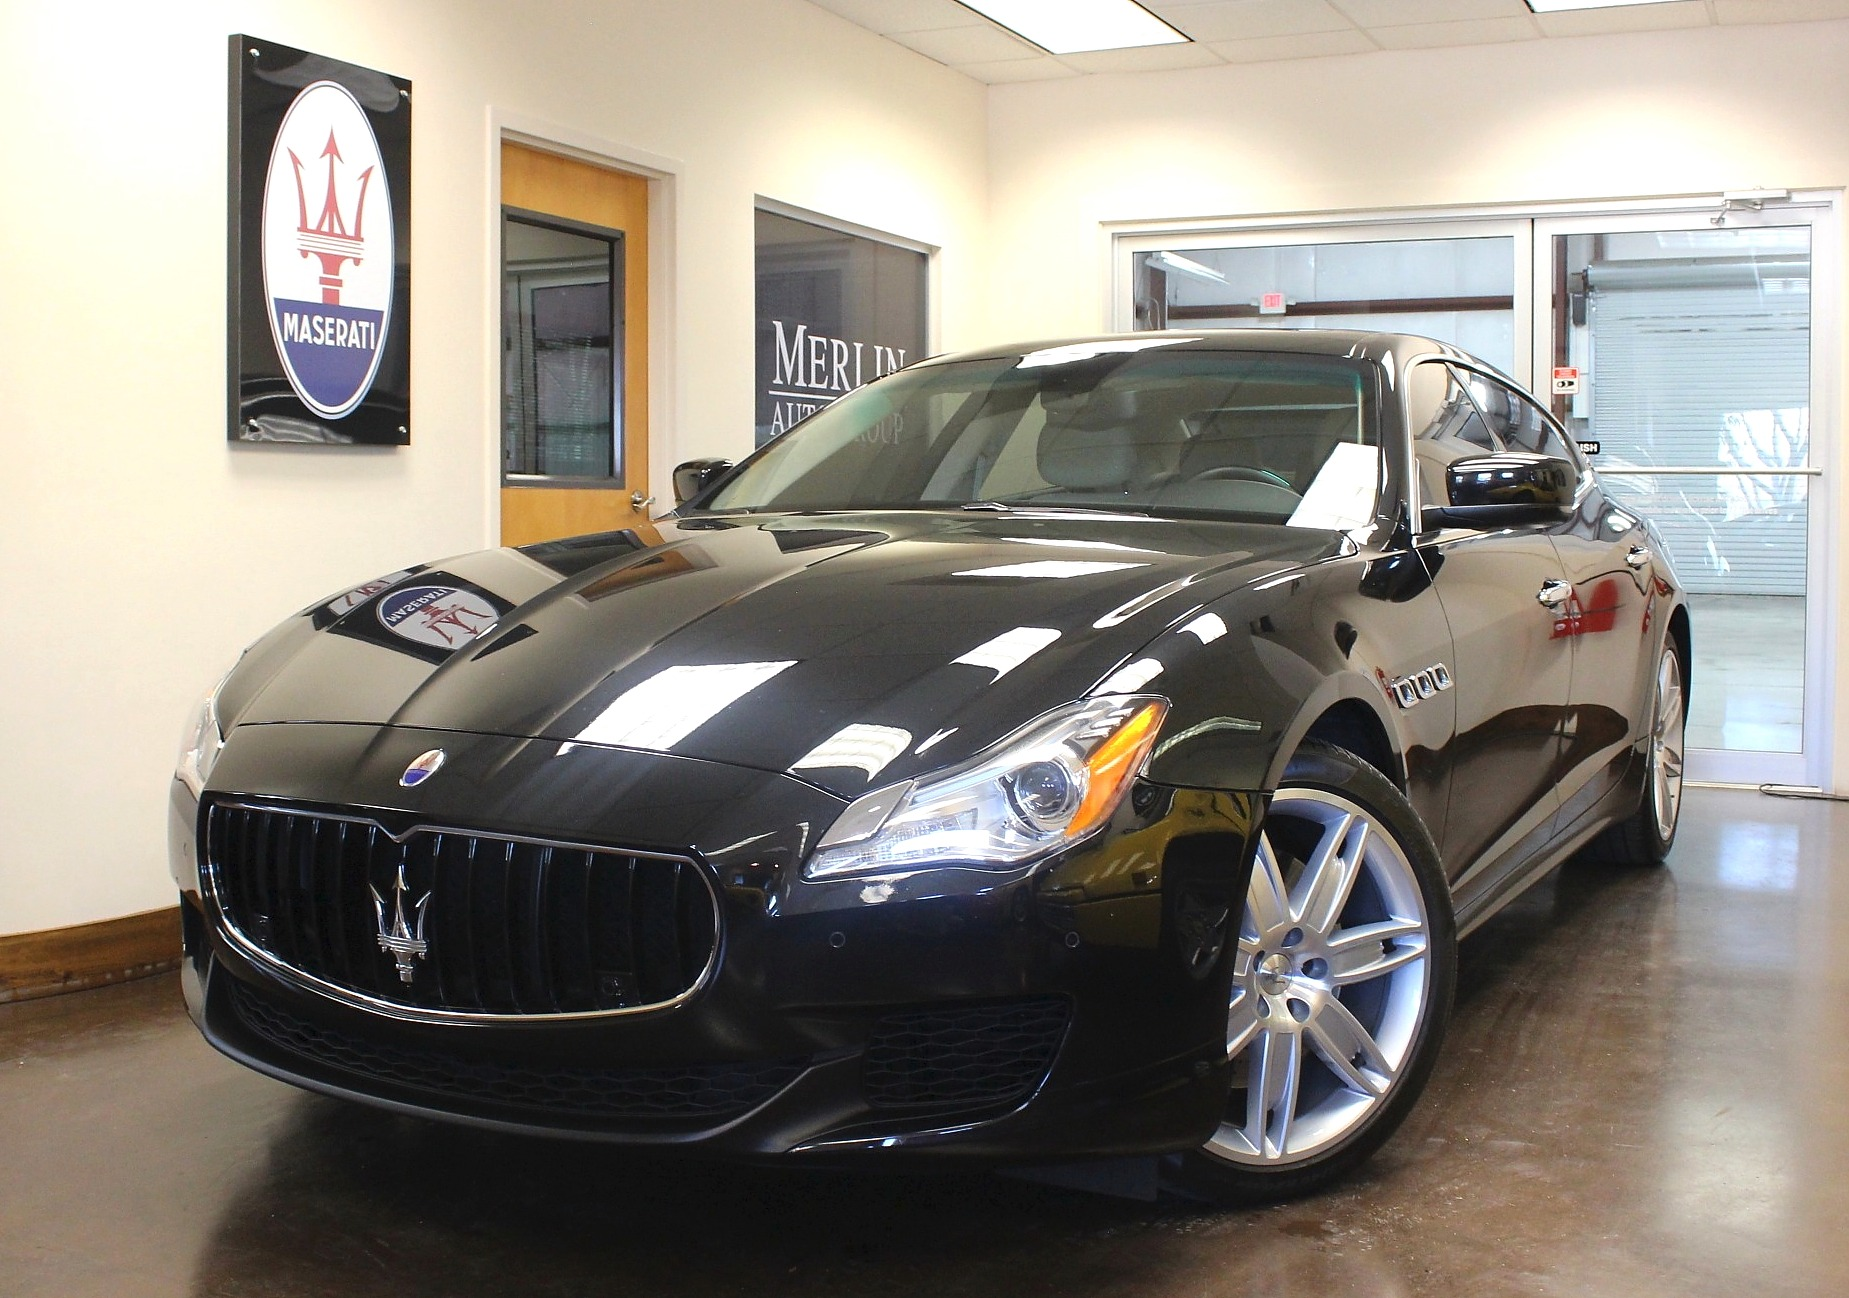 used 2015 maserati quattroporte stock p3419a ultra luxury car from merlin auto group. Black Bedroom Furniture Sets. Home Design Ideas